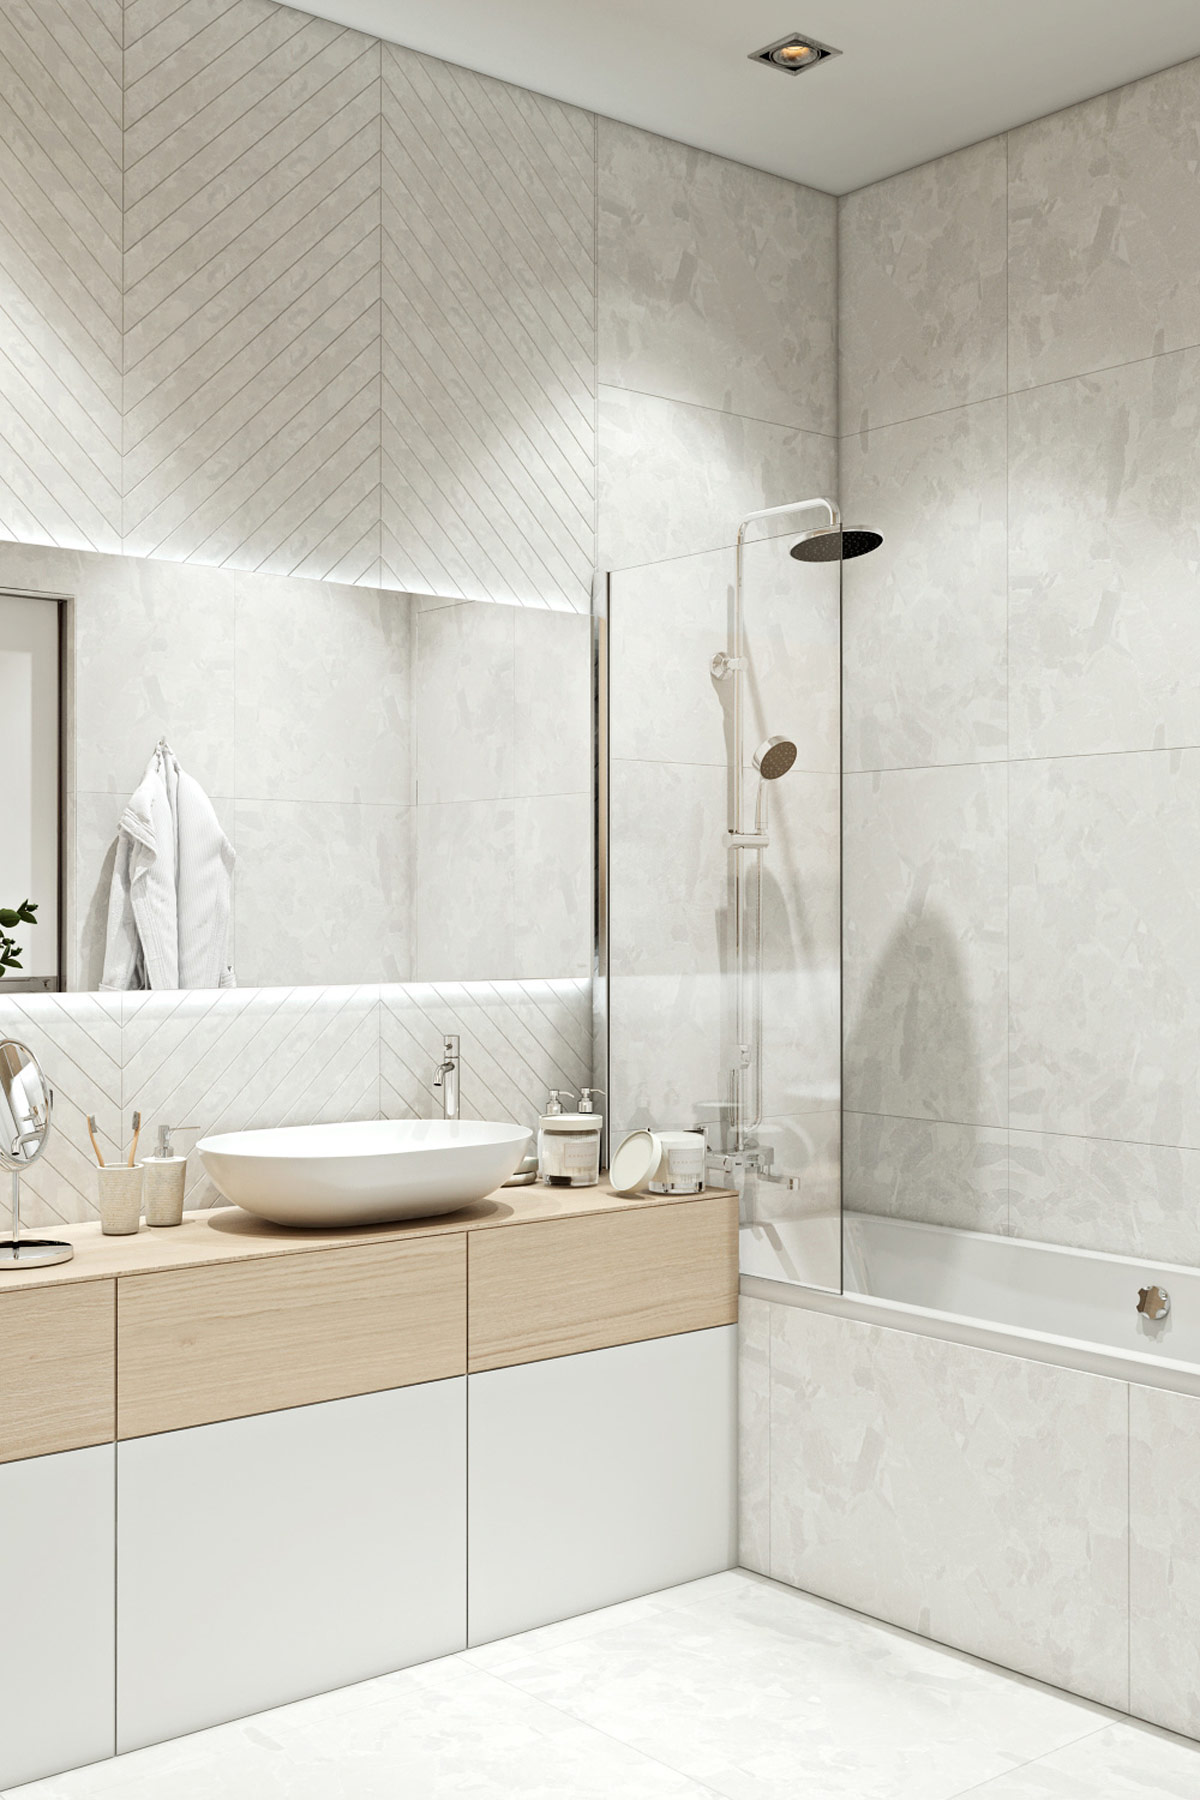 white-and-wood-modern-bathroom-with-rainfall-shower-and-simple-transparent-shower-wall